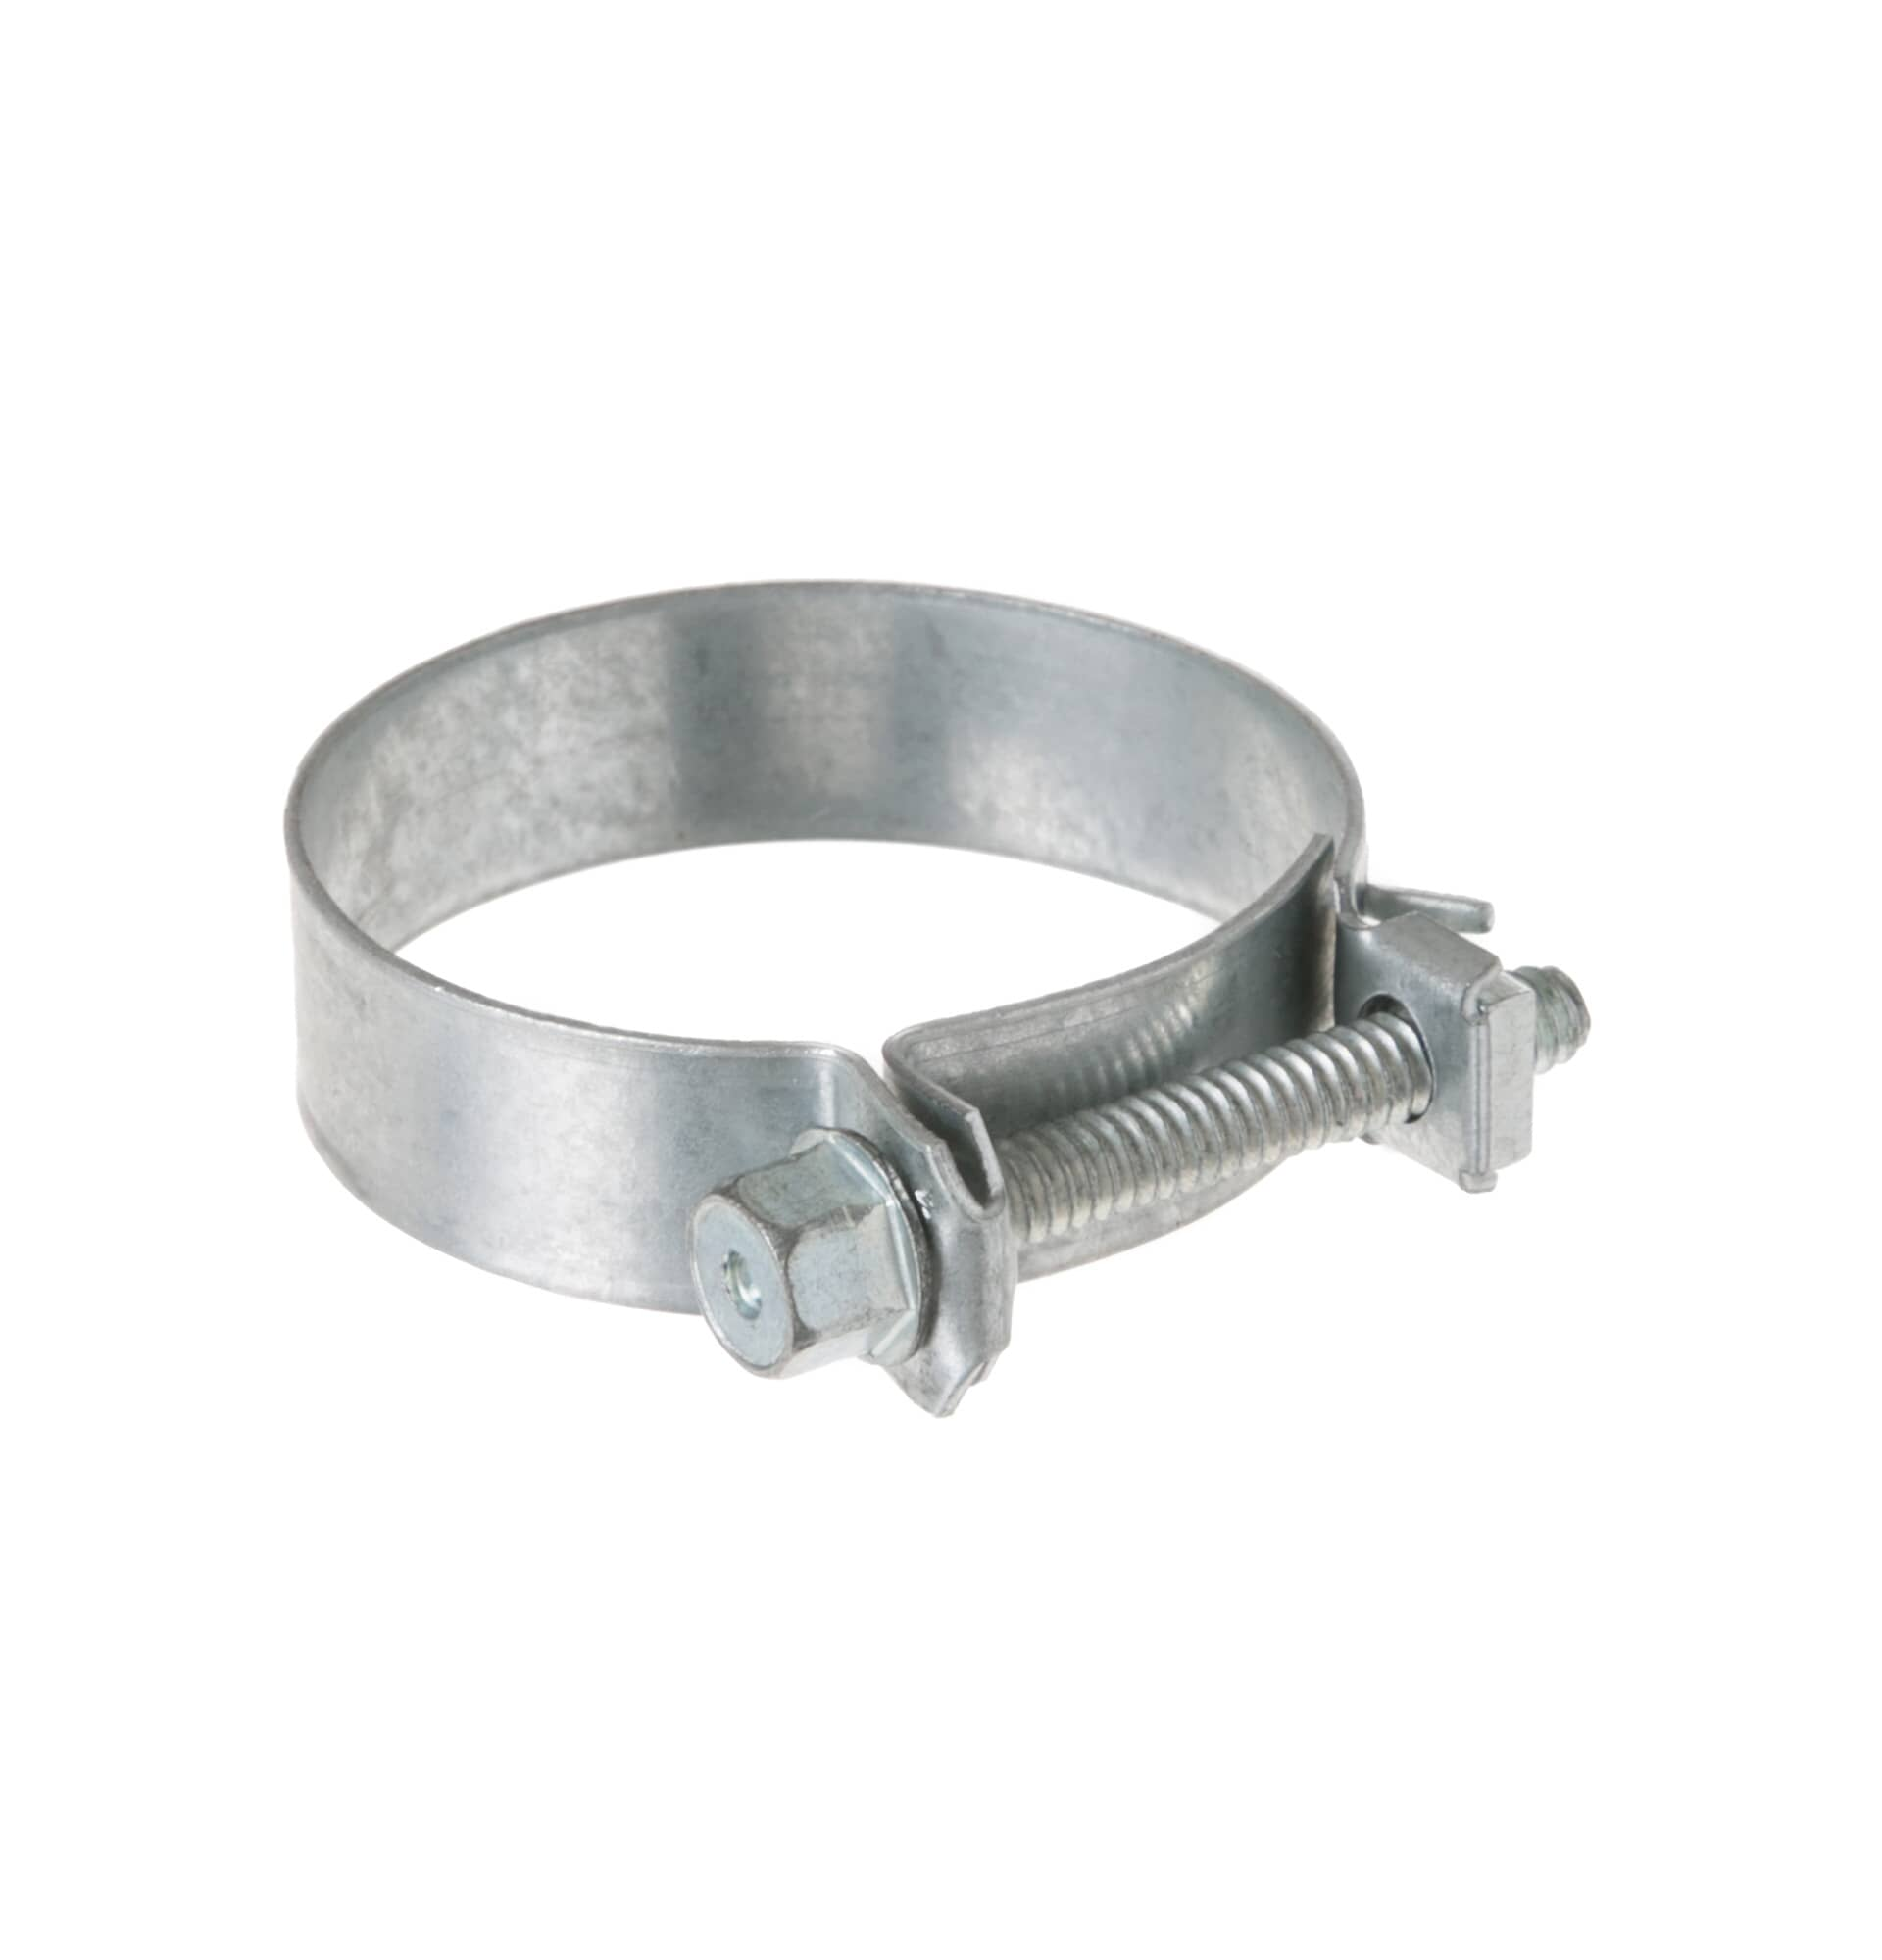 GE Appliance WD01X10105 CLAMP